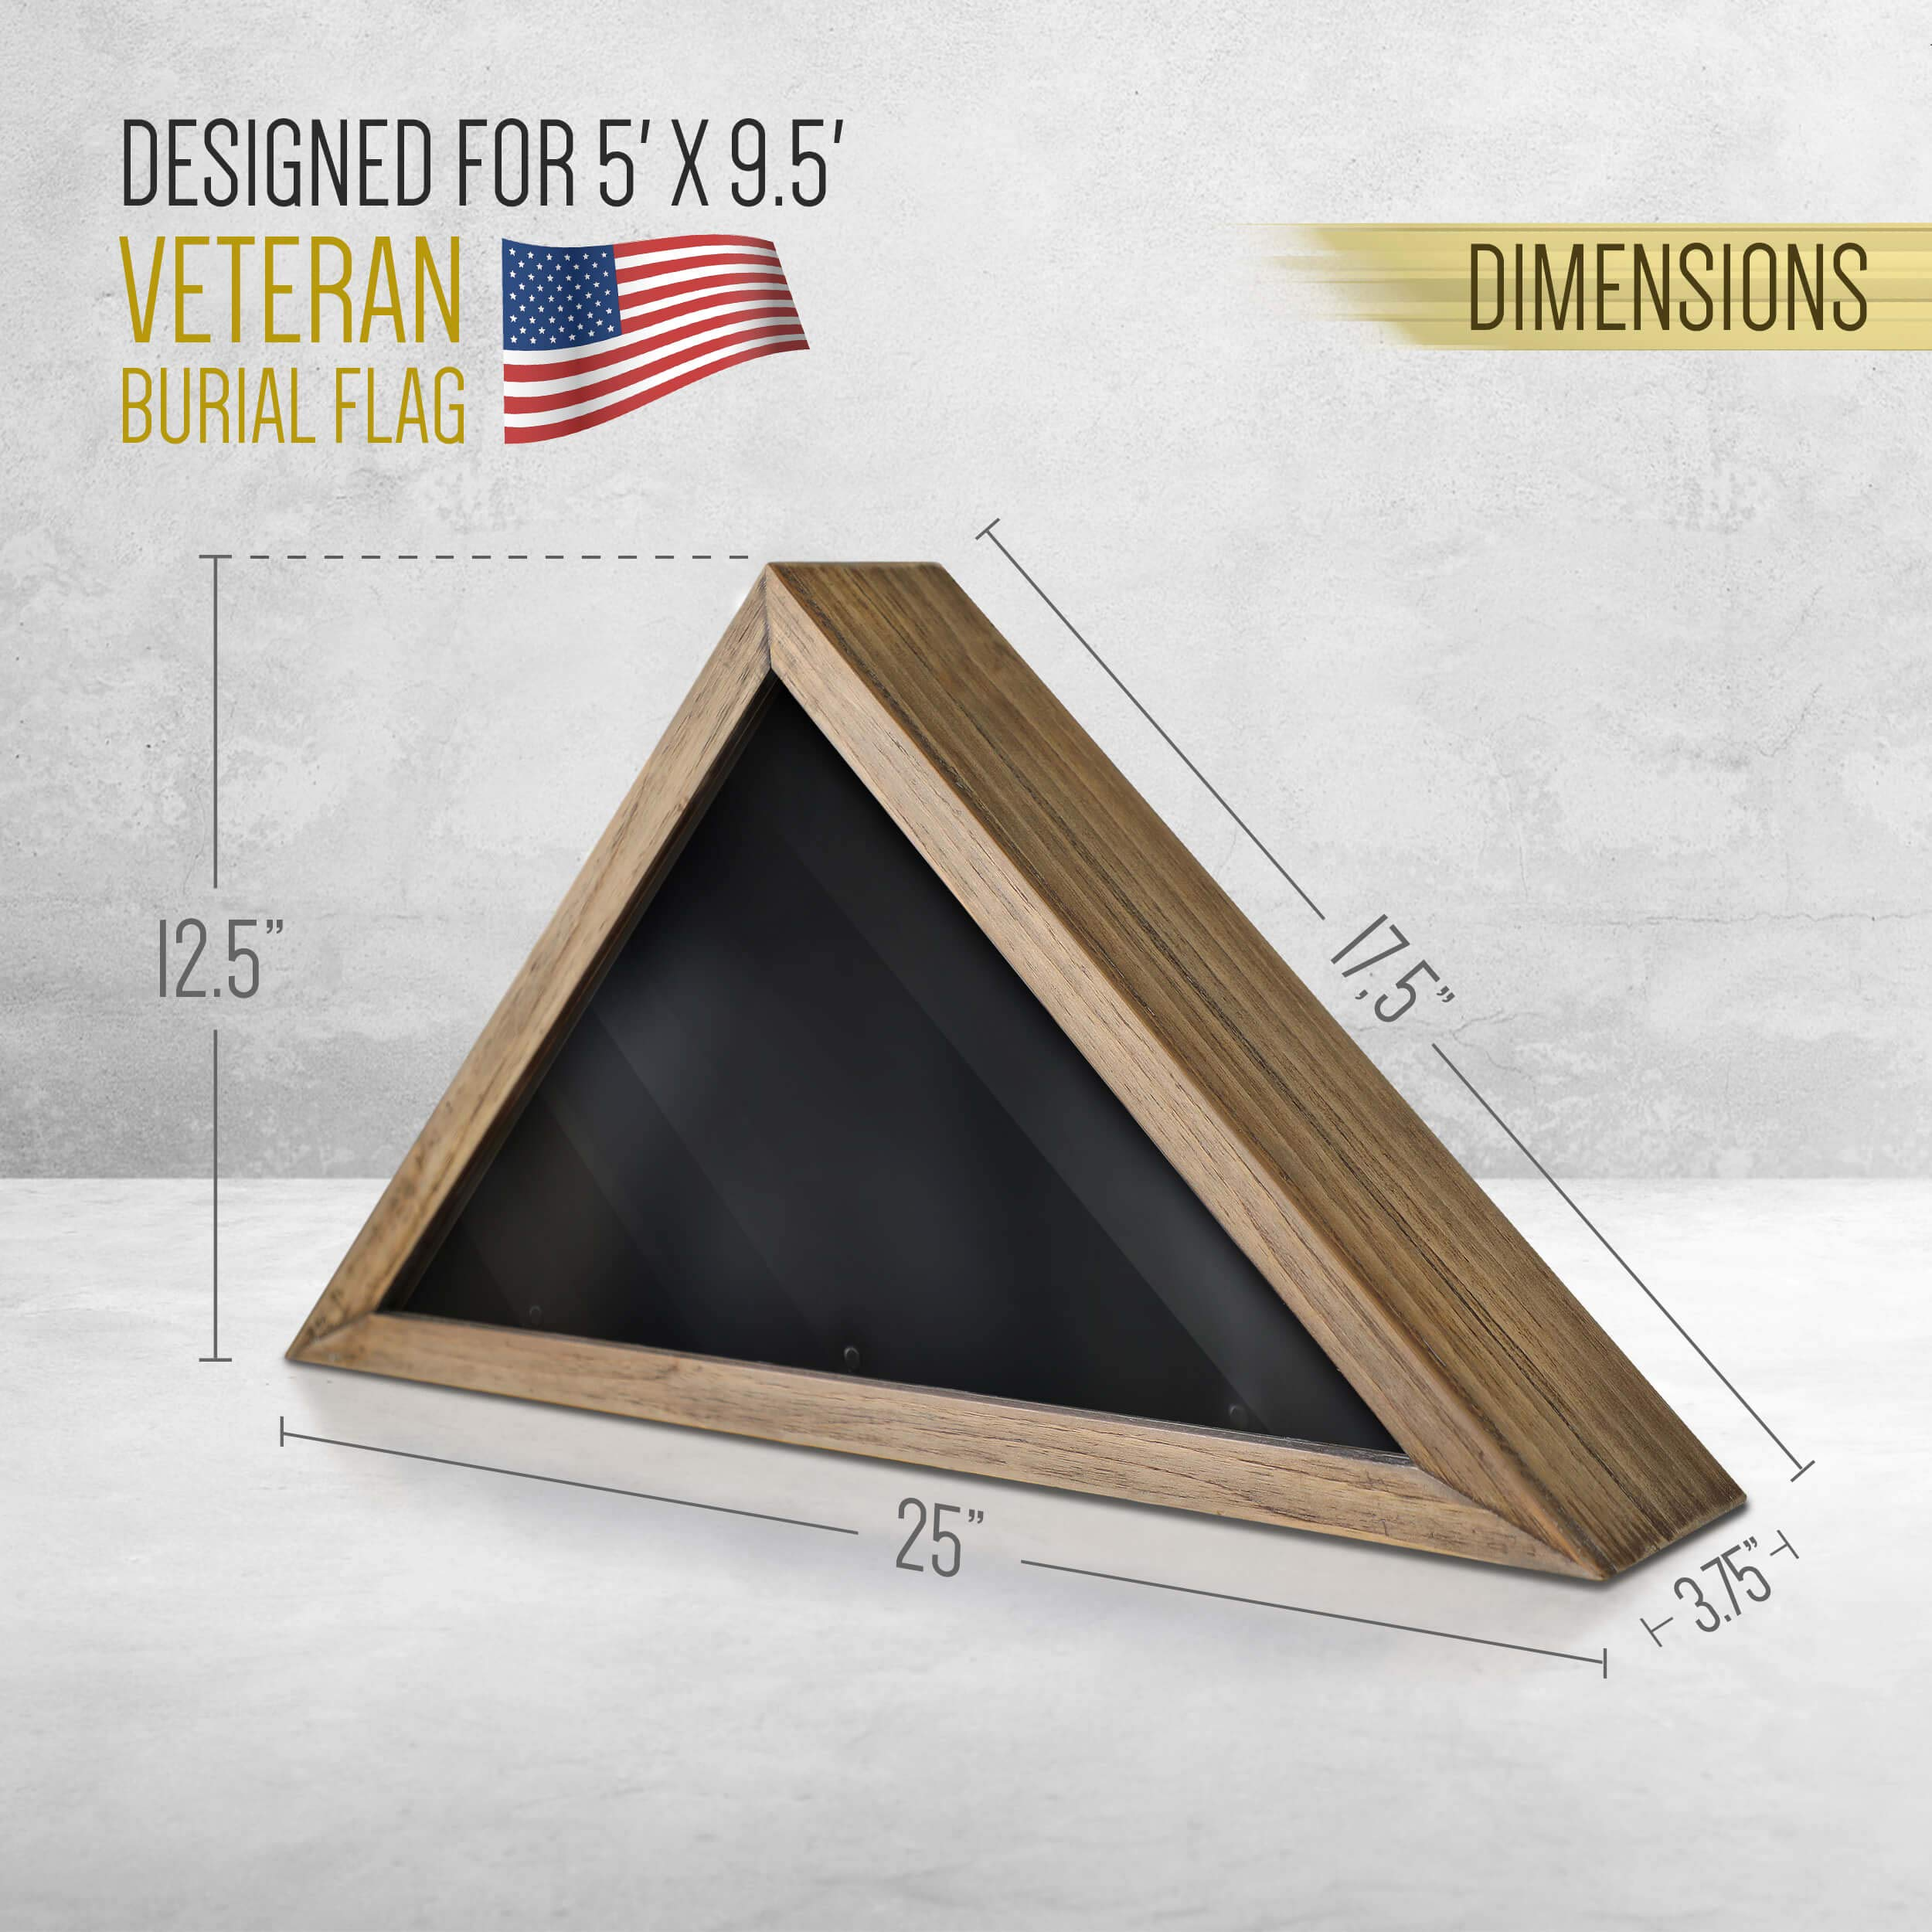 Rustic Flag Case - SOLID WOOD Military Flag Display Case for 9.5 x 5 American Veteran Burial Flag, Wall Mounted Burial Flag Frame, - Flag Shadow Box to display folded flag. (Weathered Wood) by HBCY Creations (Image #5)